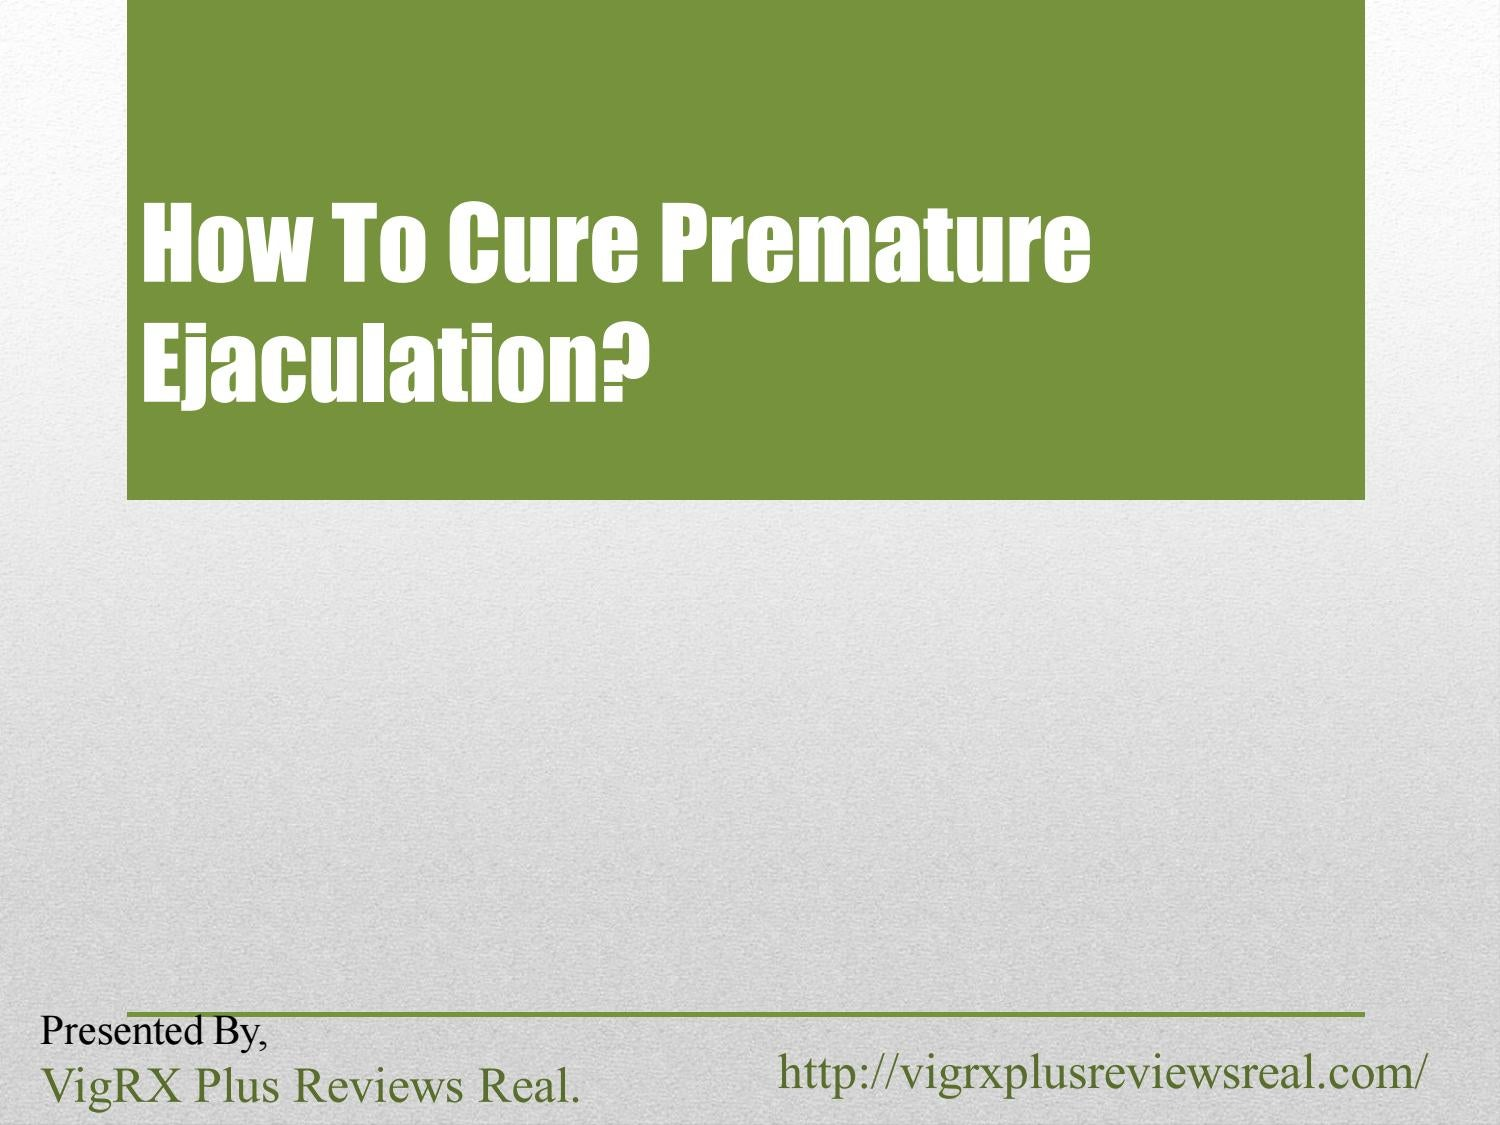 Best way to cure premature ejaculation